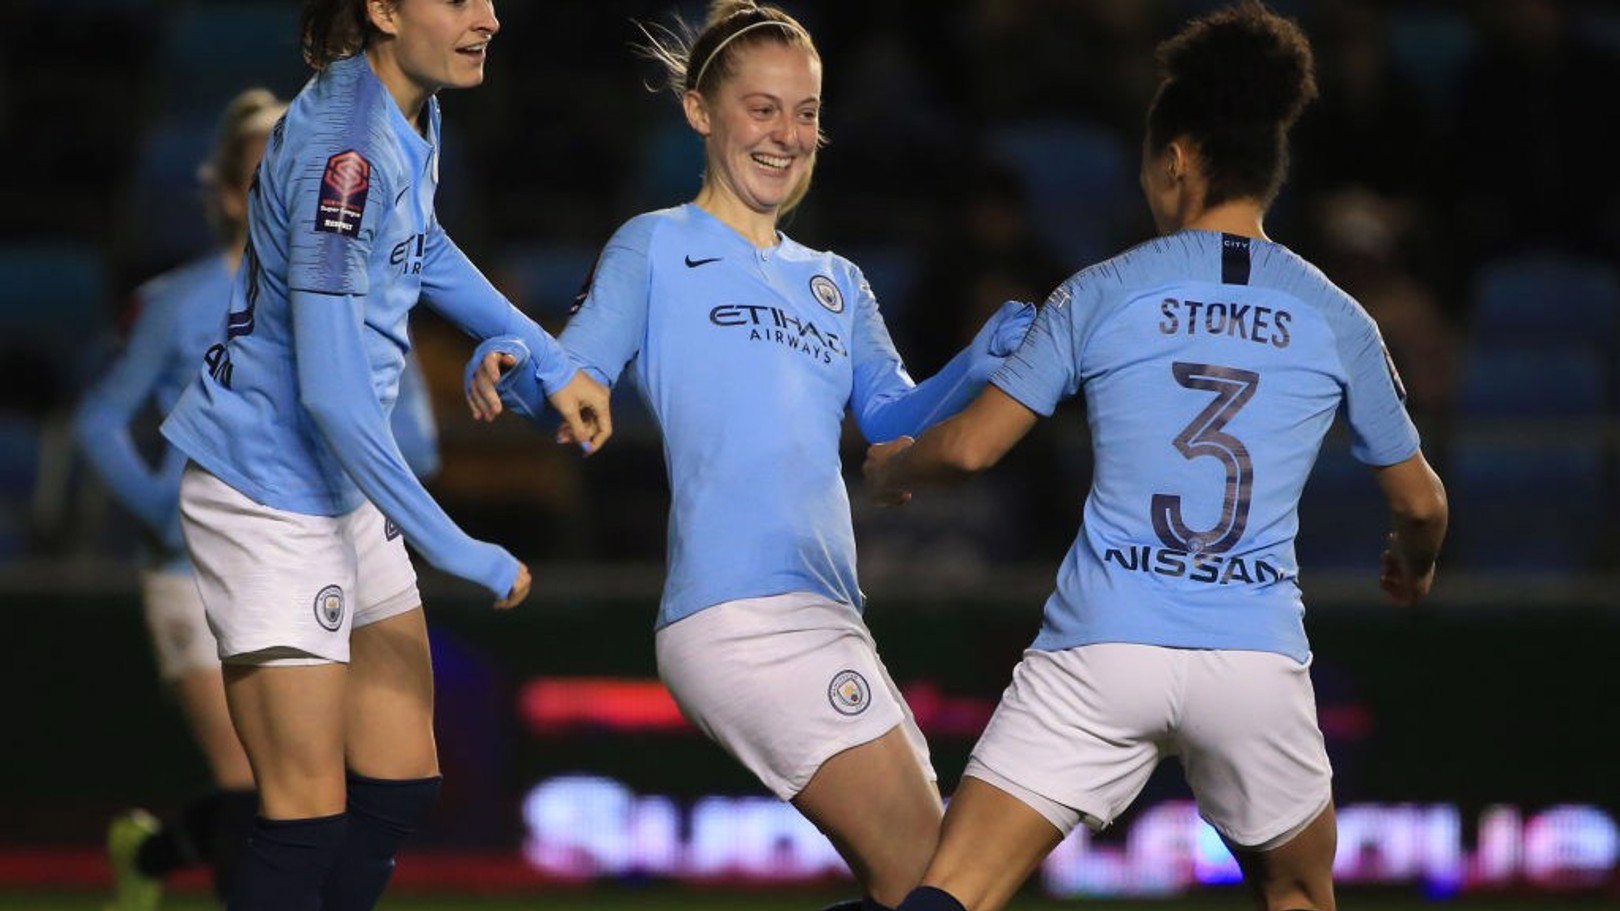 Walsh and Stokes up for PFA Player of the Month